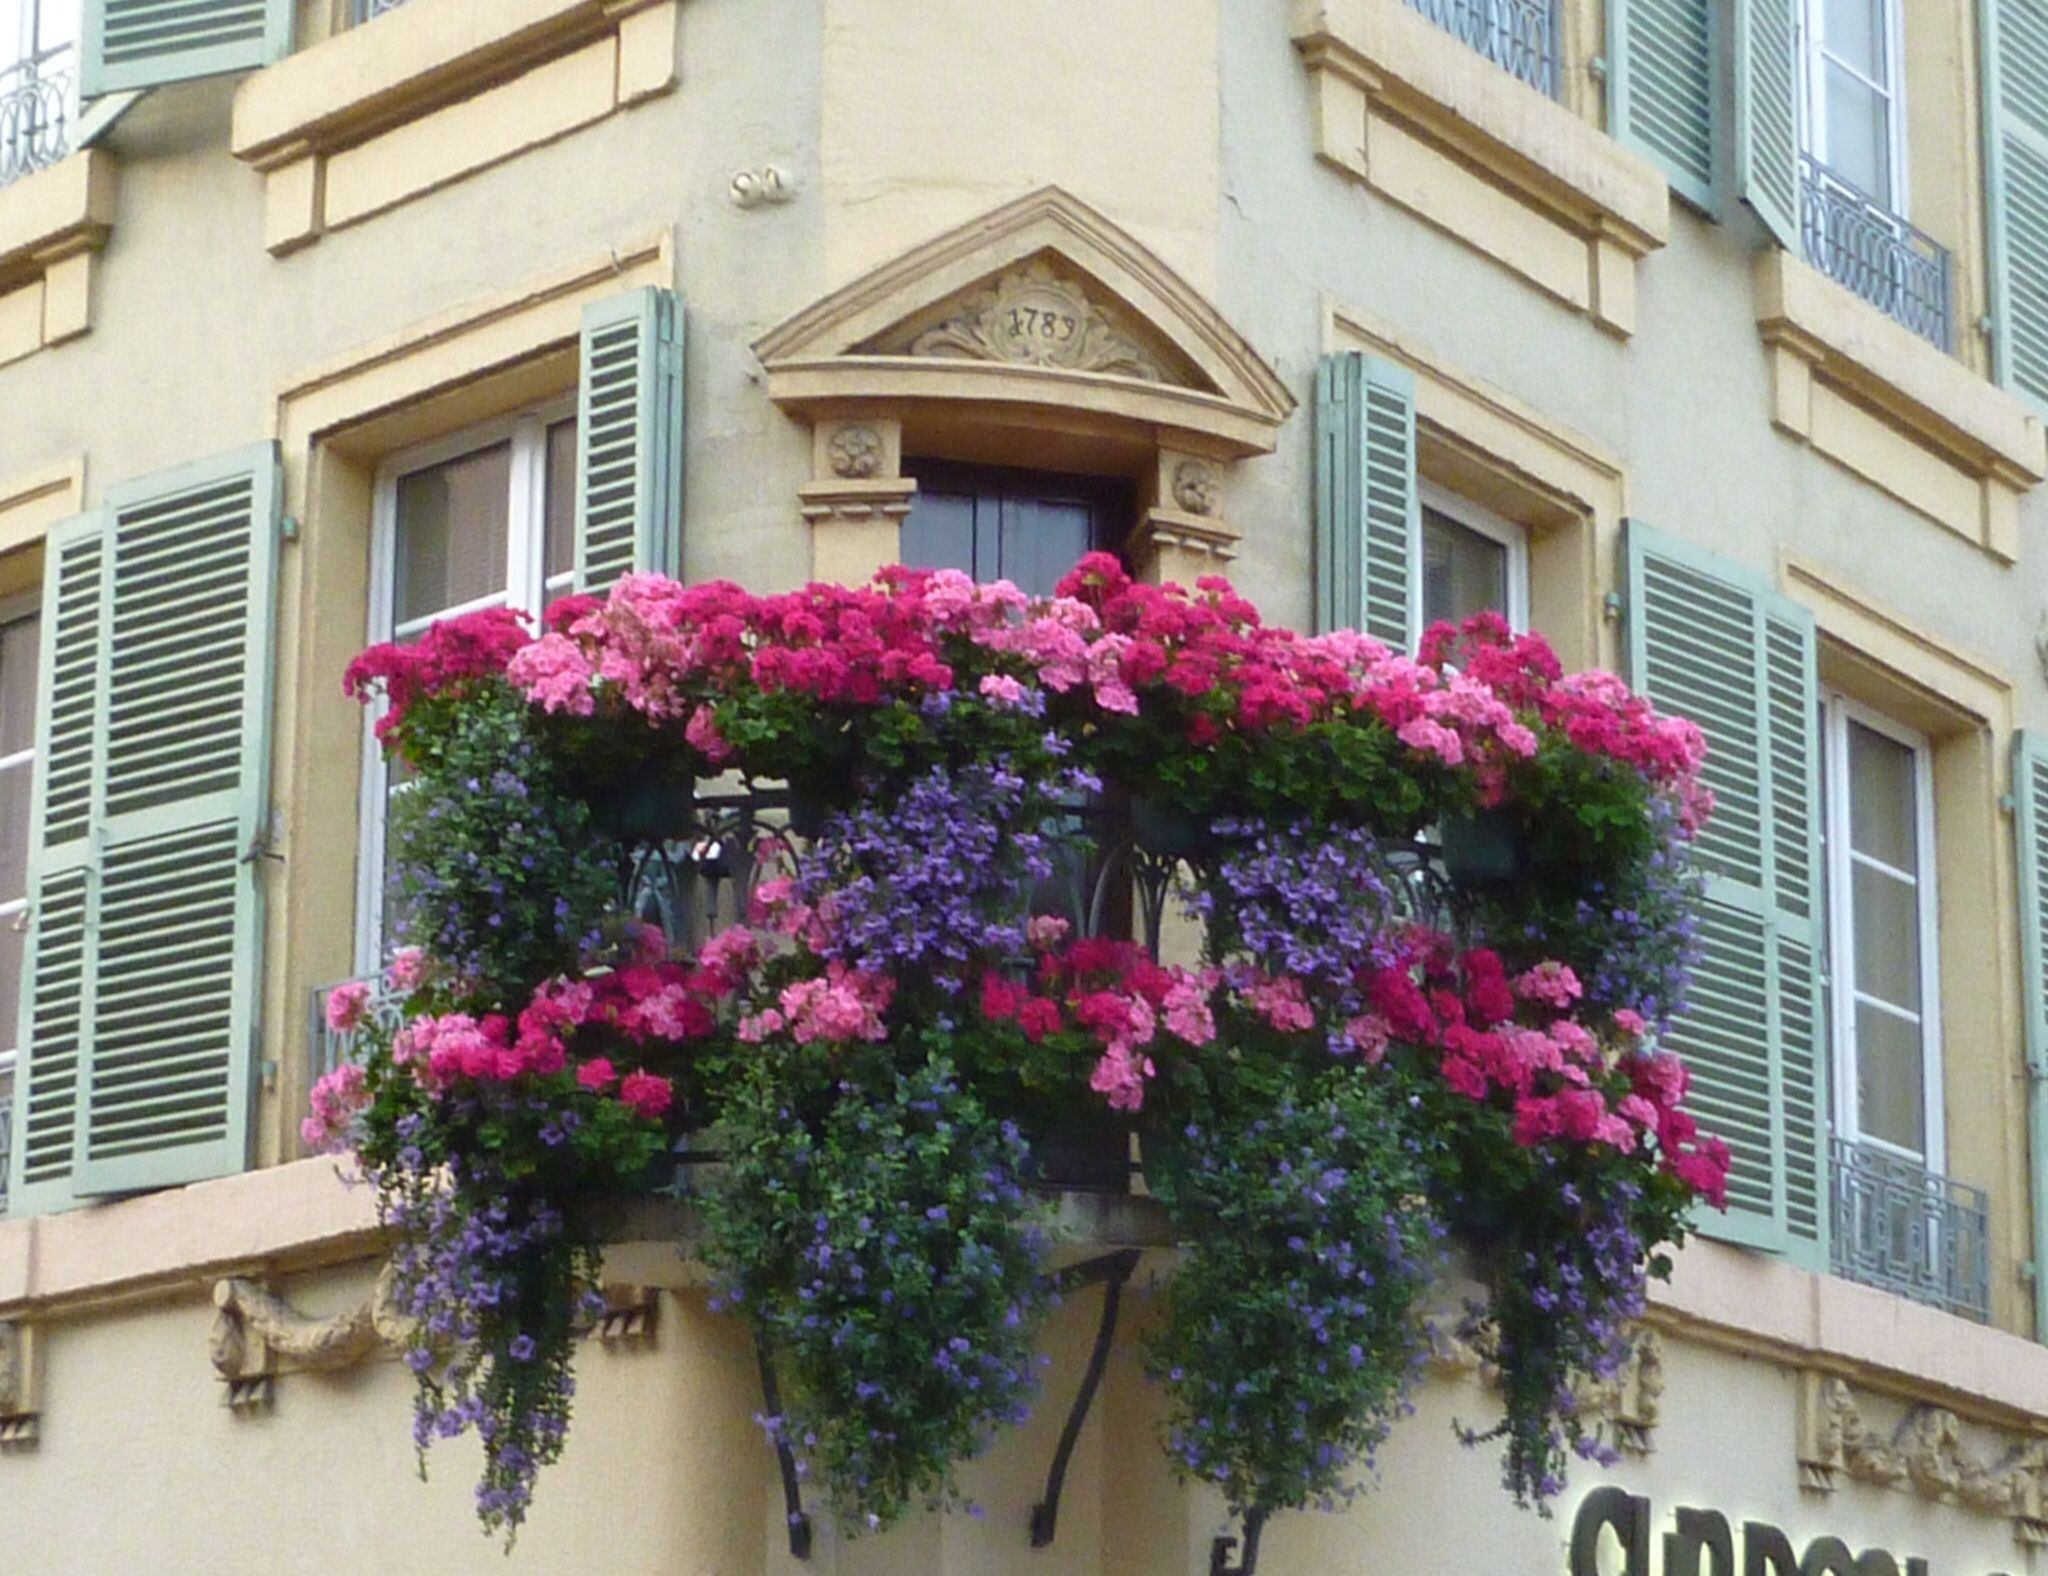 Gorgeous window boxes in Colmar, France | Window boxes | Pinterest ...